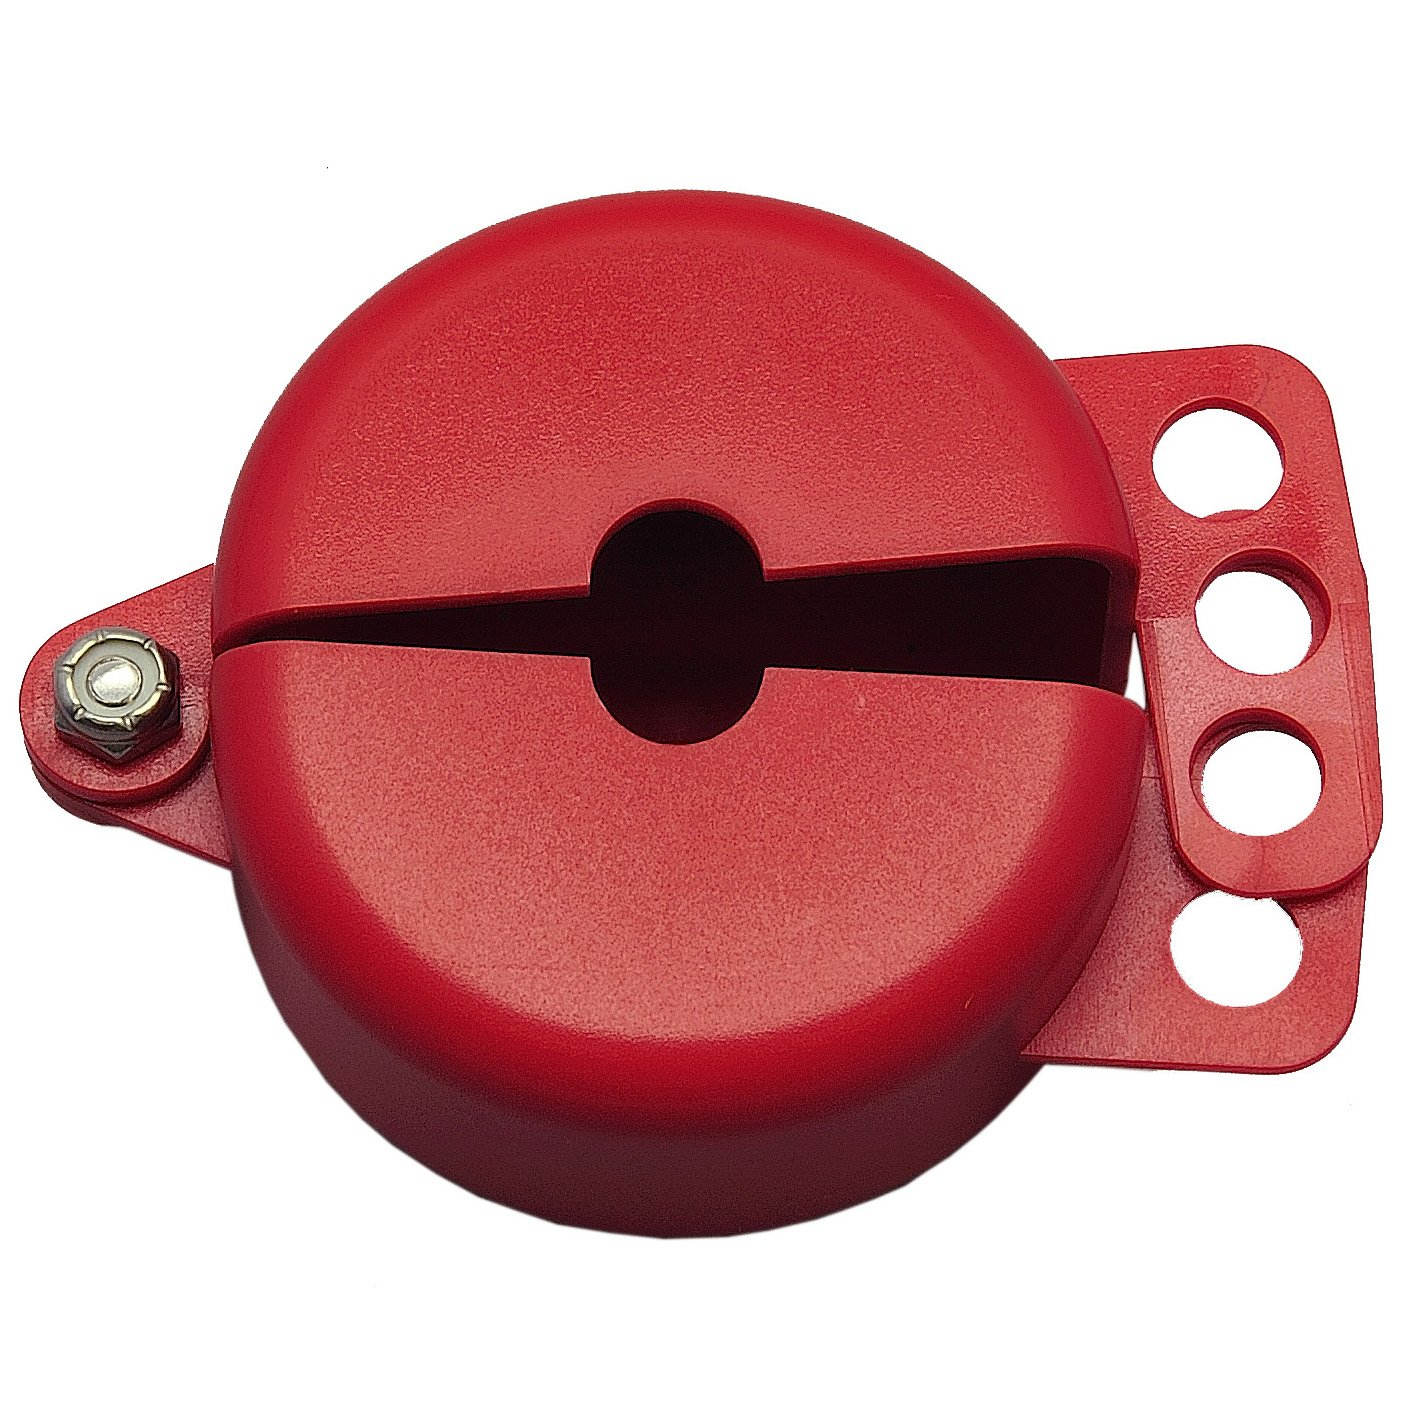 ZING 7103 RecycLockout Gate Valve Lockout, 1 Inch - 2.25 Inch, Recycled Plastic